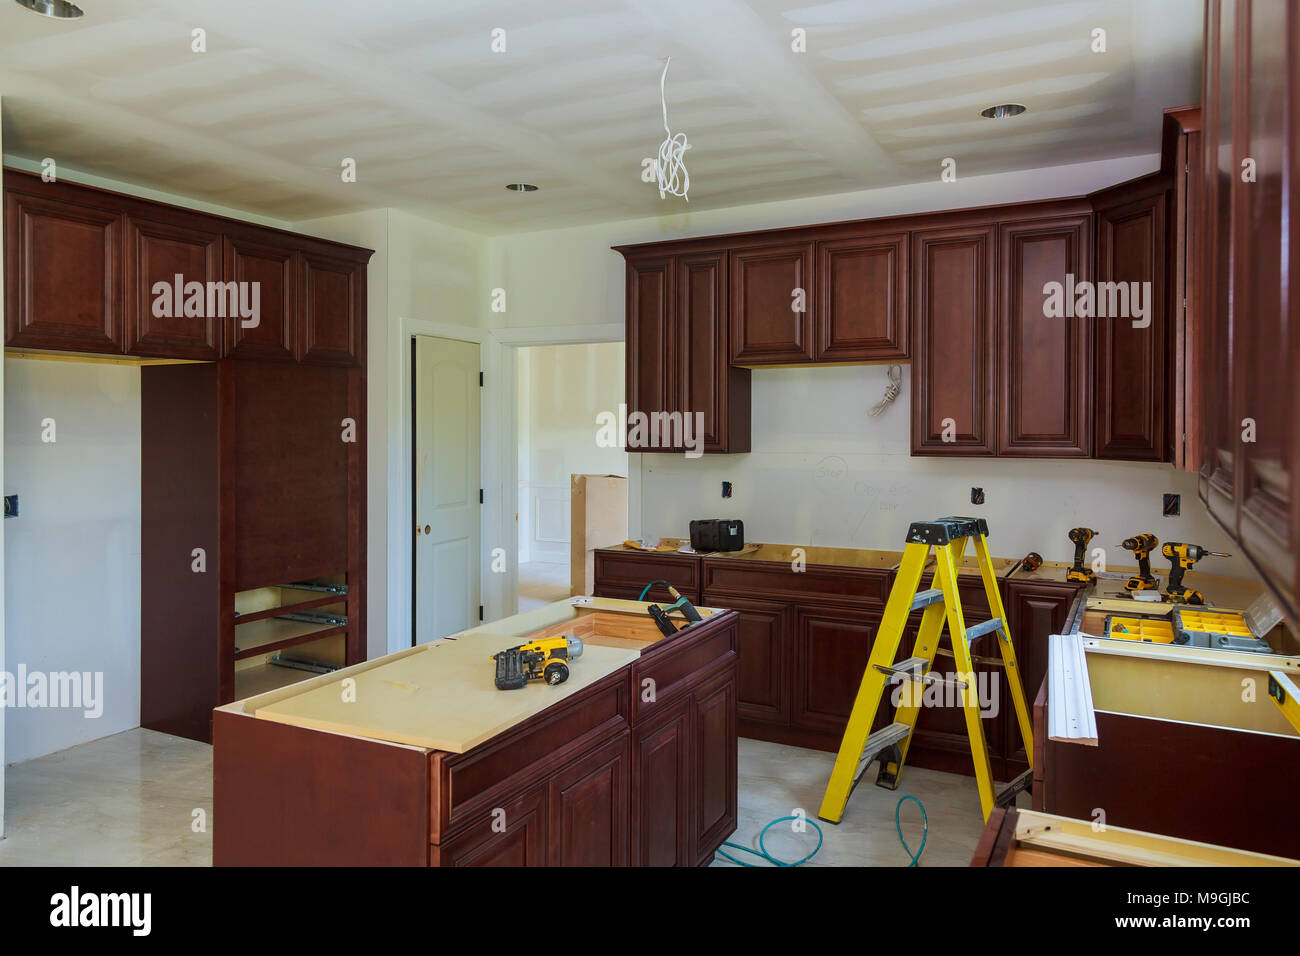 Installing New Induction Hob In Modern Installation Of